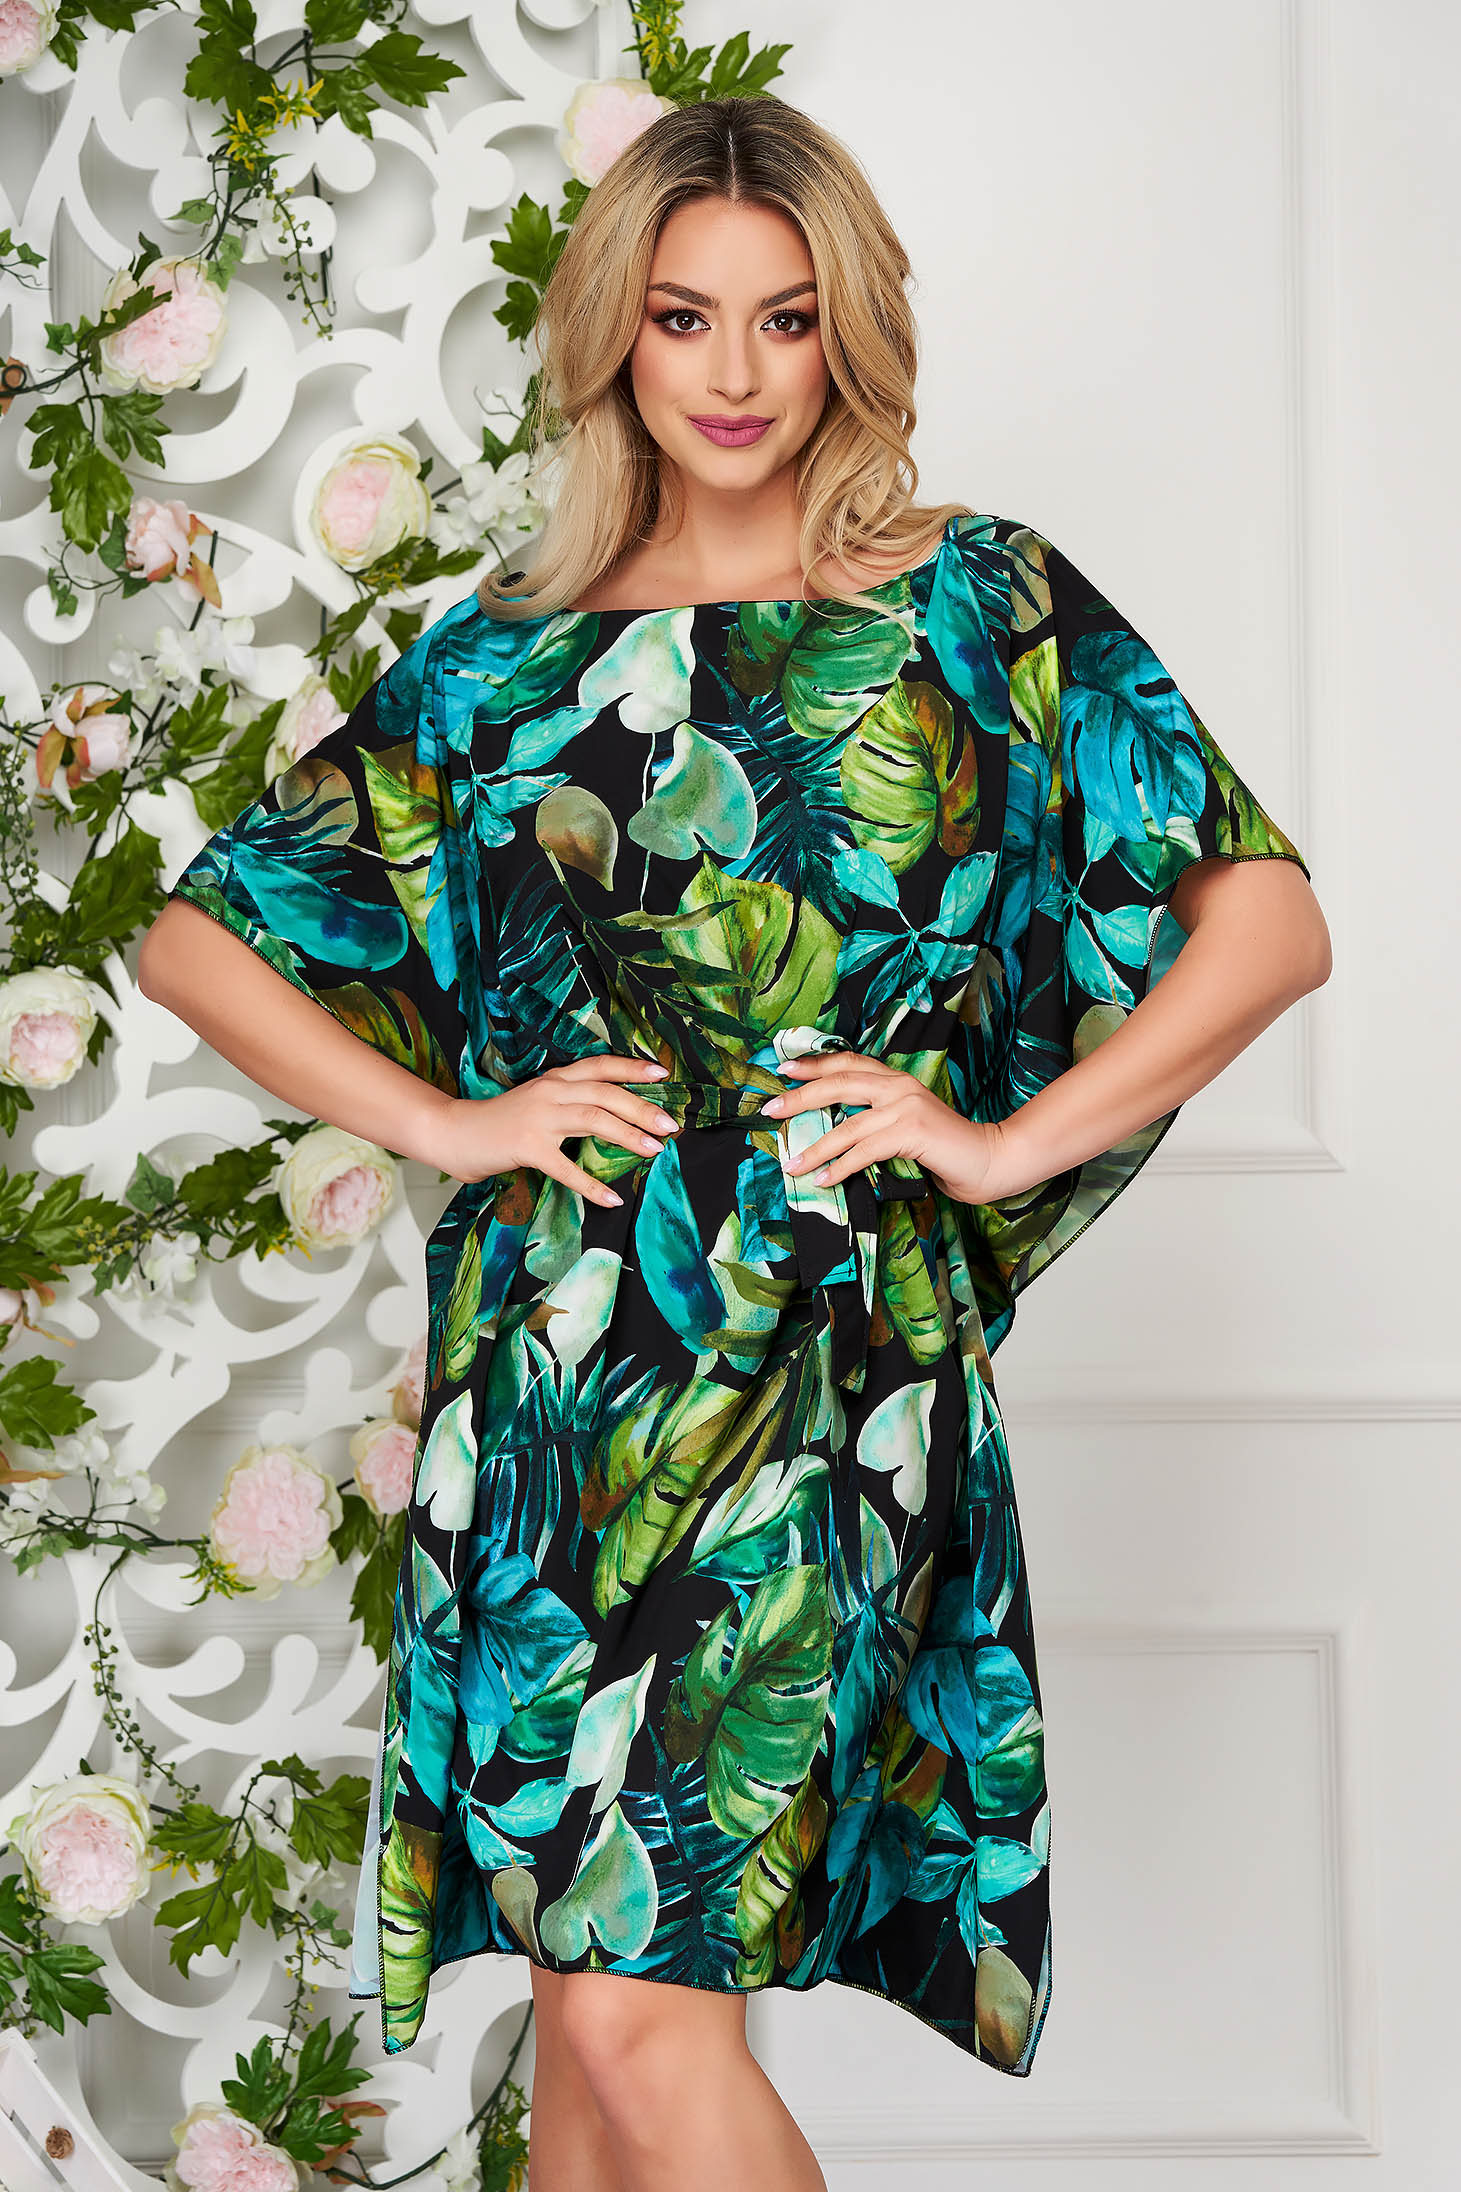 Dirty green dress short cut flared thin fabric with butterfly sleeves